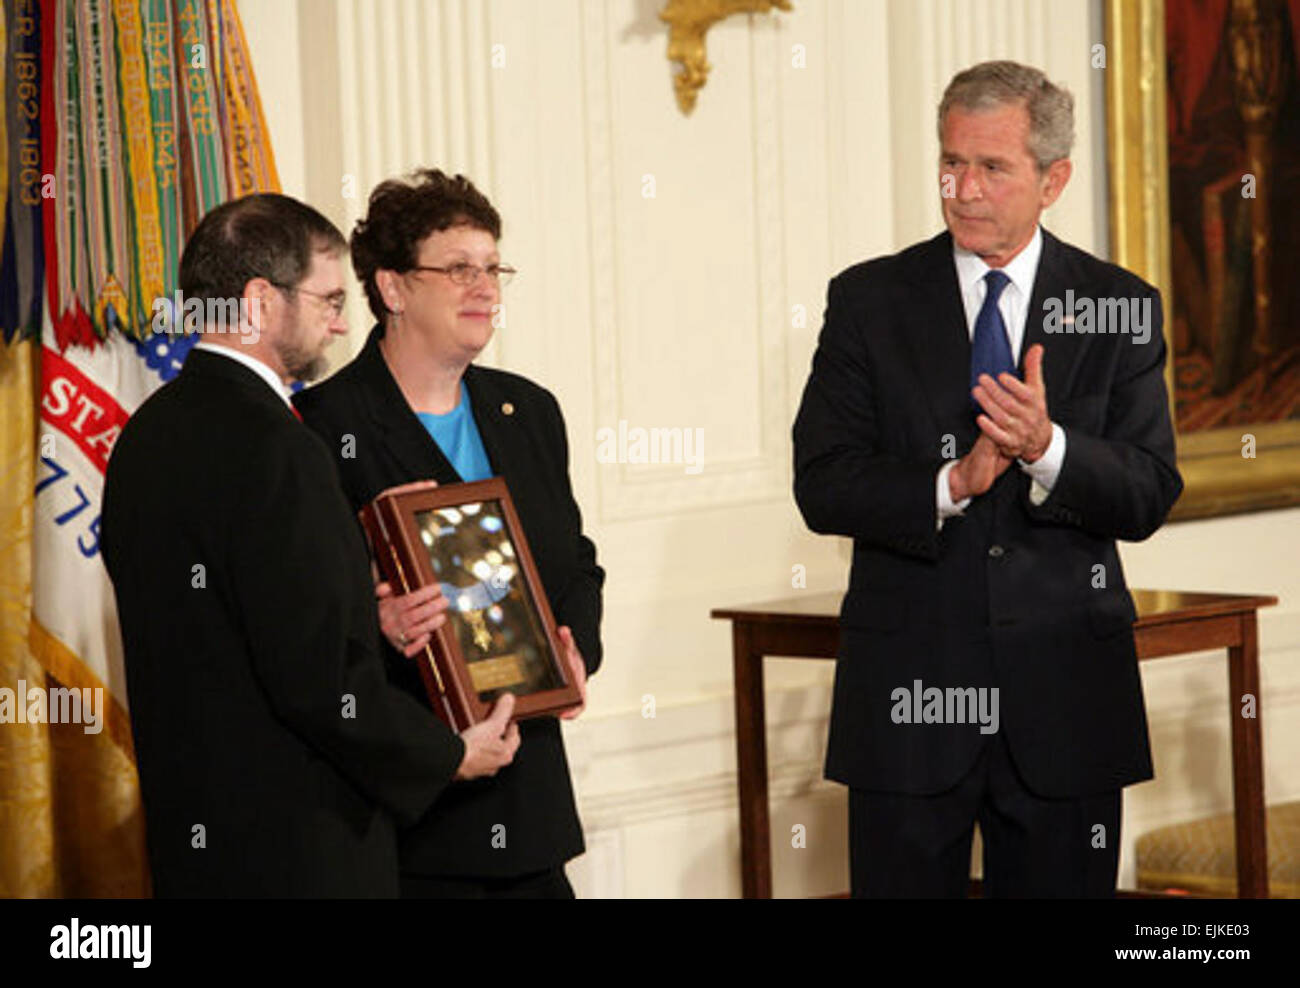 President George W. Bush leads the applause in honor of Private First Class Ross A. McGinnis, U.S. Army, after presenting - Stock Image